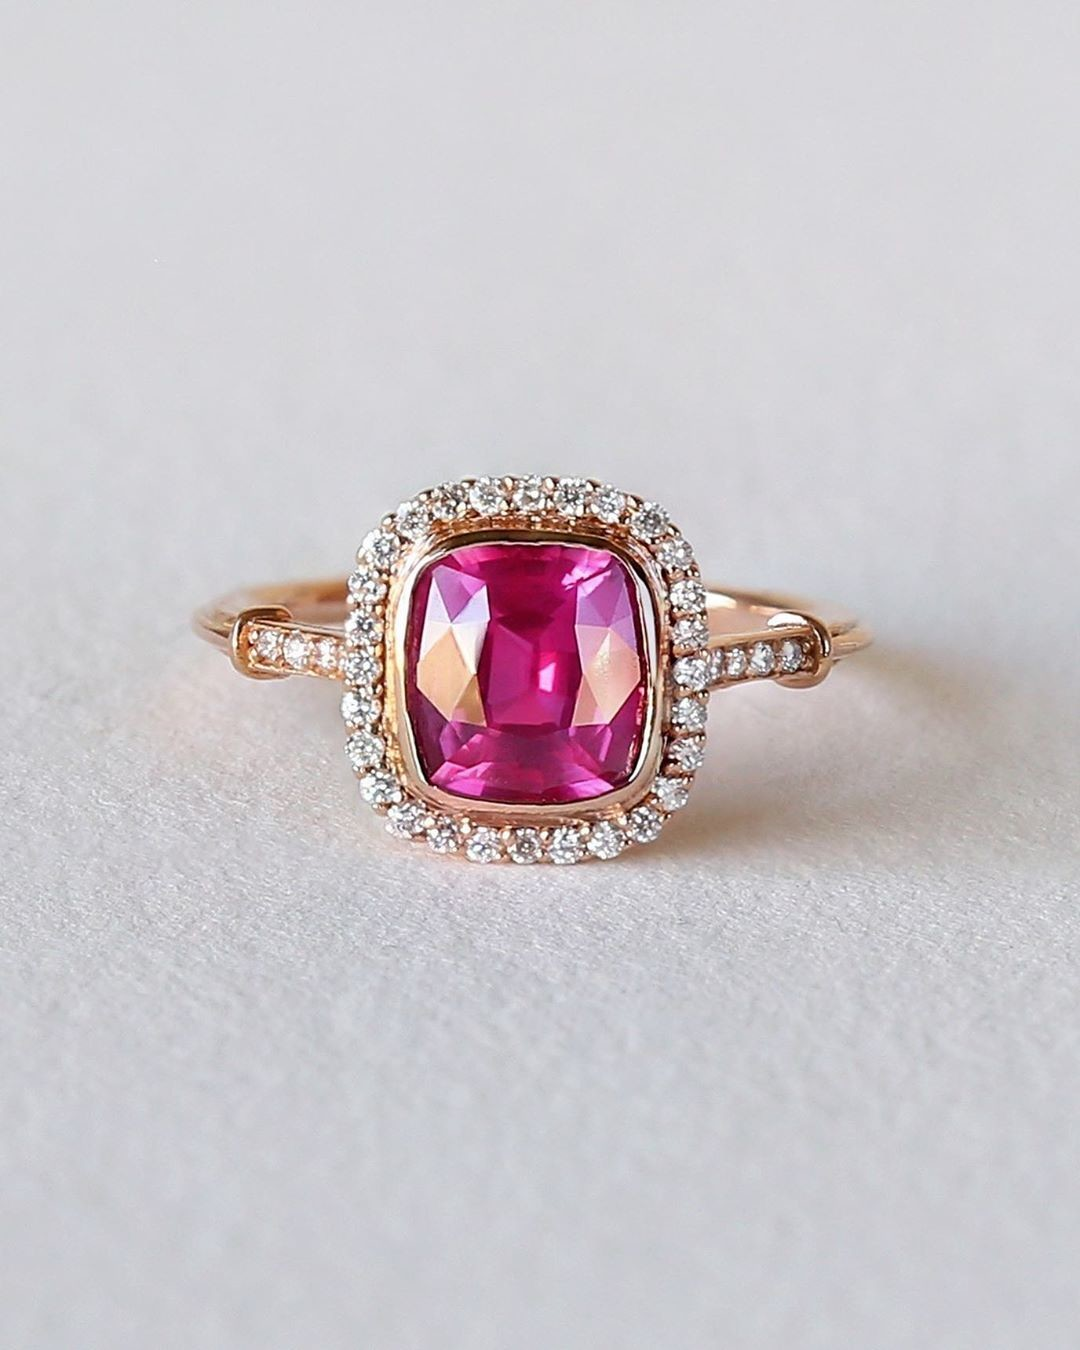 Vivid and Vibrant Pink Emanates from This Masterfully Cut Natural Pink Sapphire. 💕💫✨ Click the link in our bio for more info